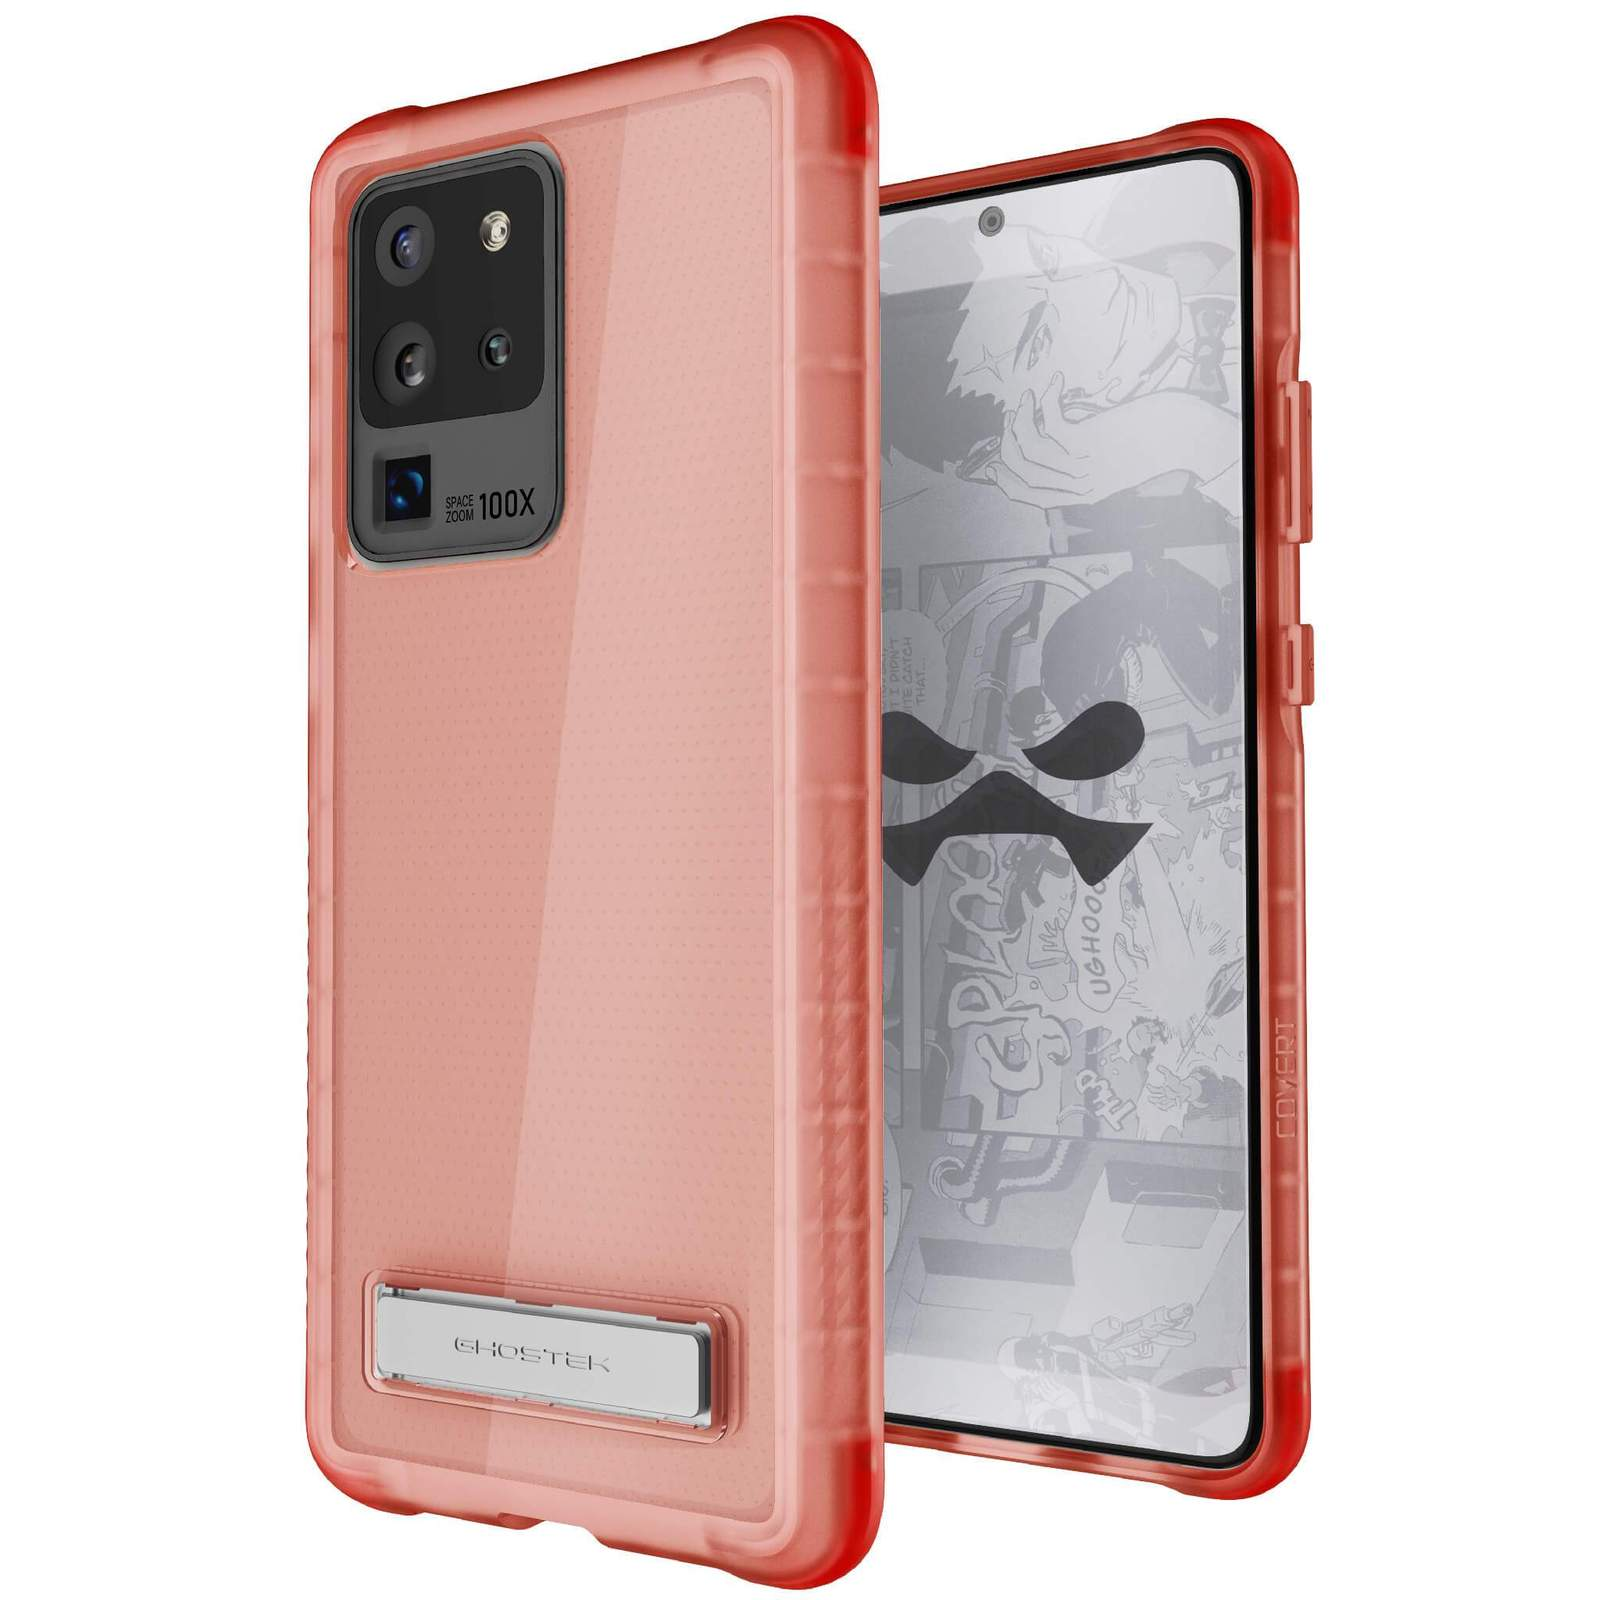 Galaxy S20 Ultra Case — COVERT [Pink]